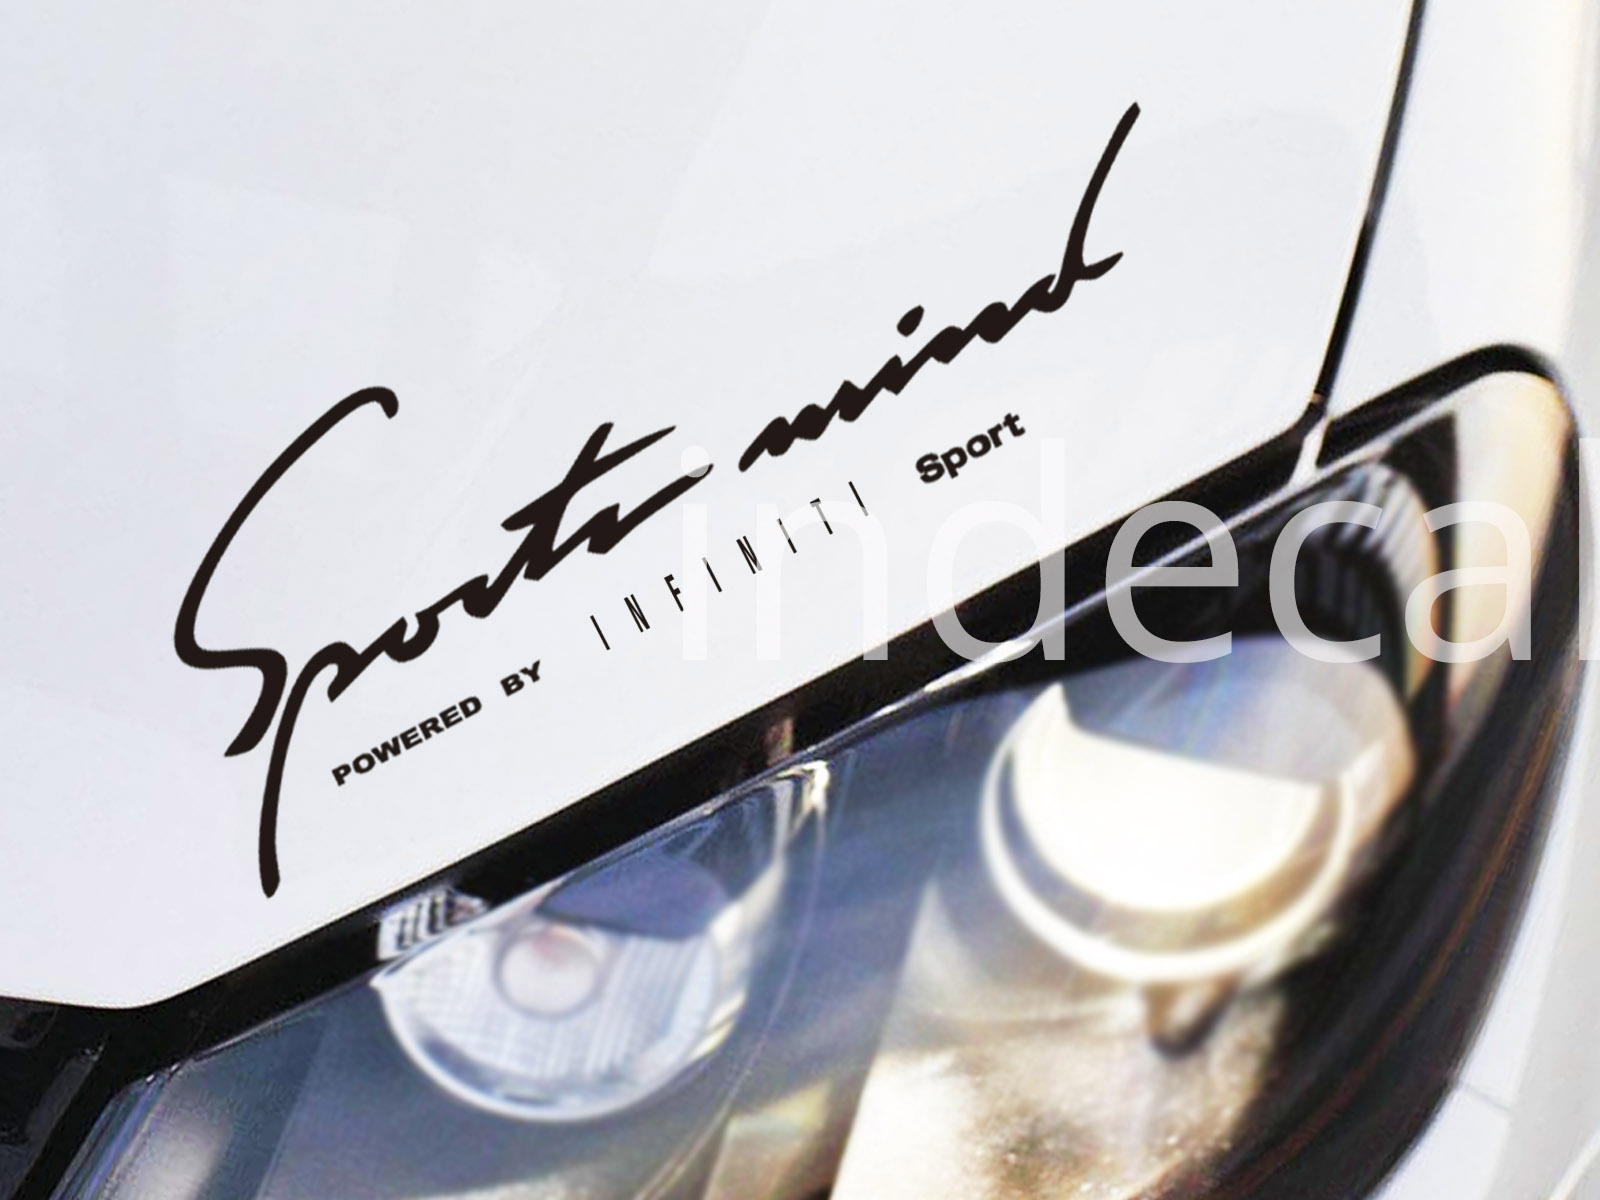 1 x Infiniti Sports Mind Sticker - Black